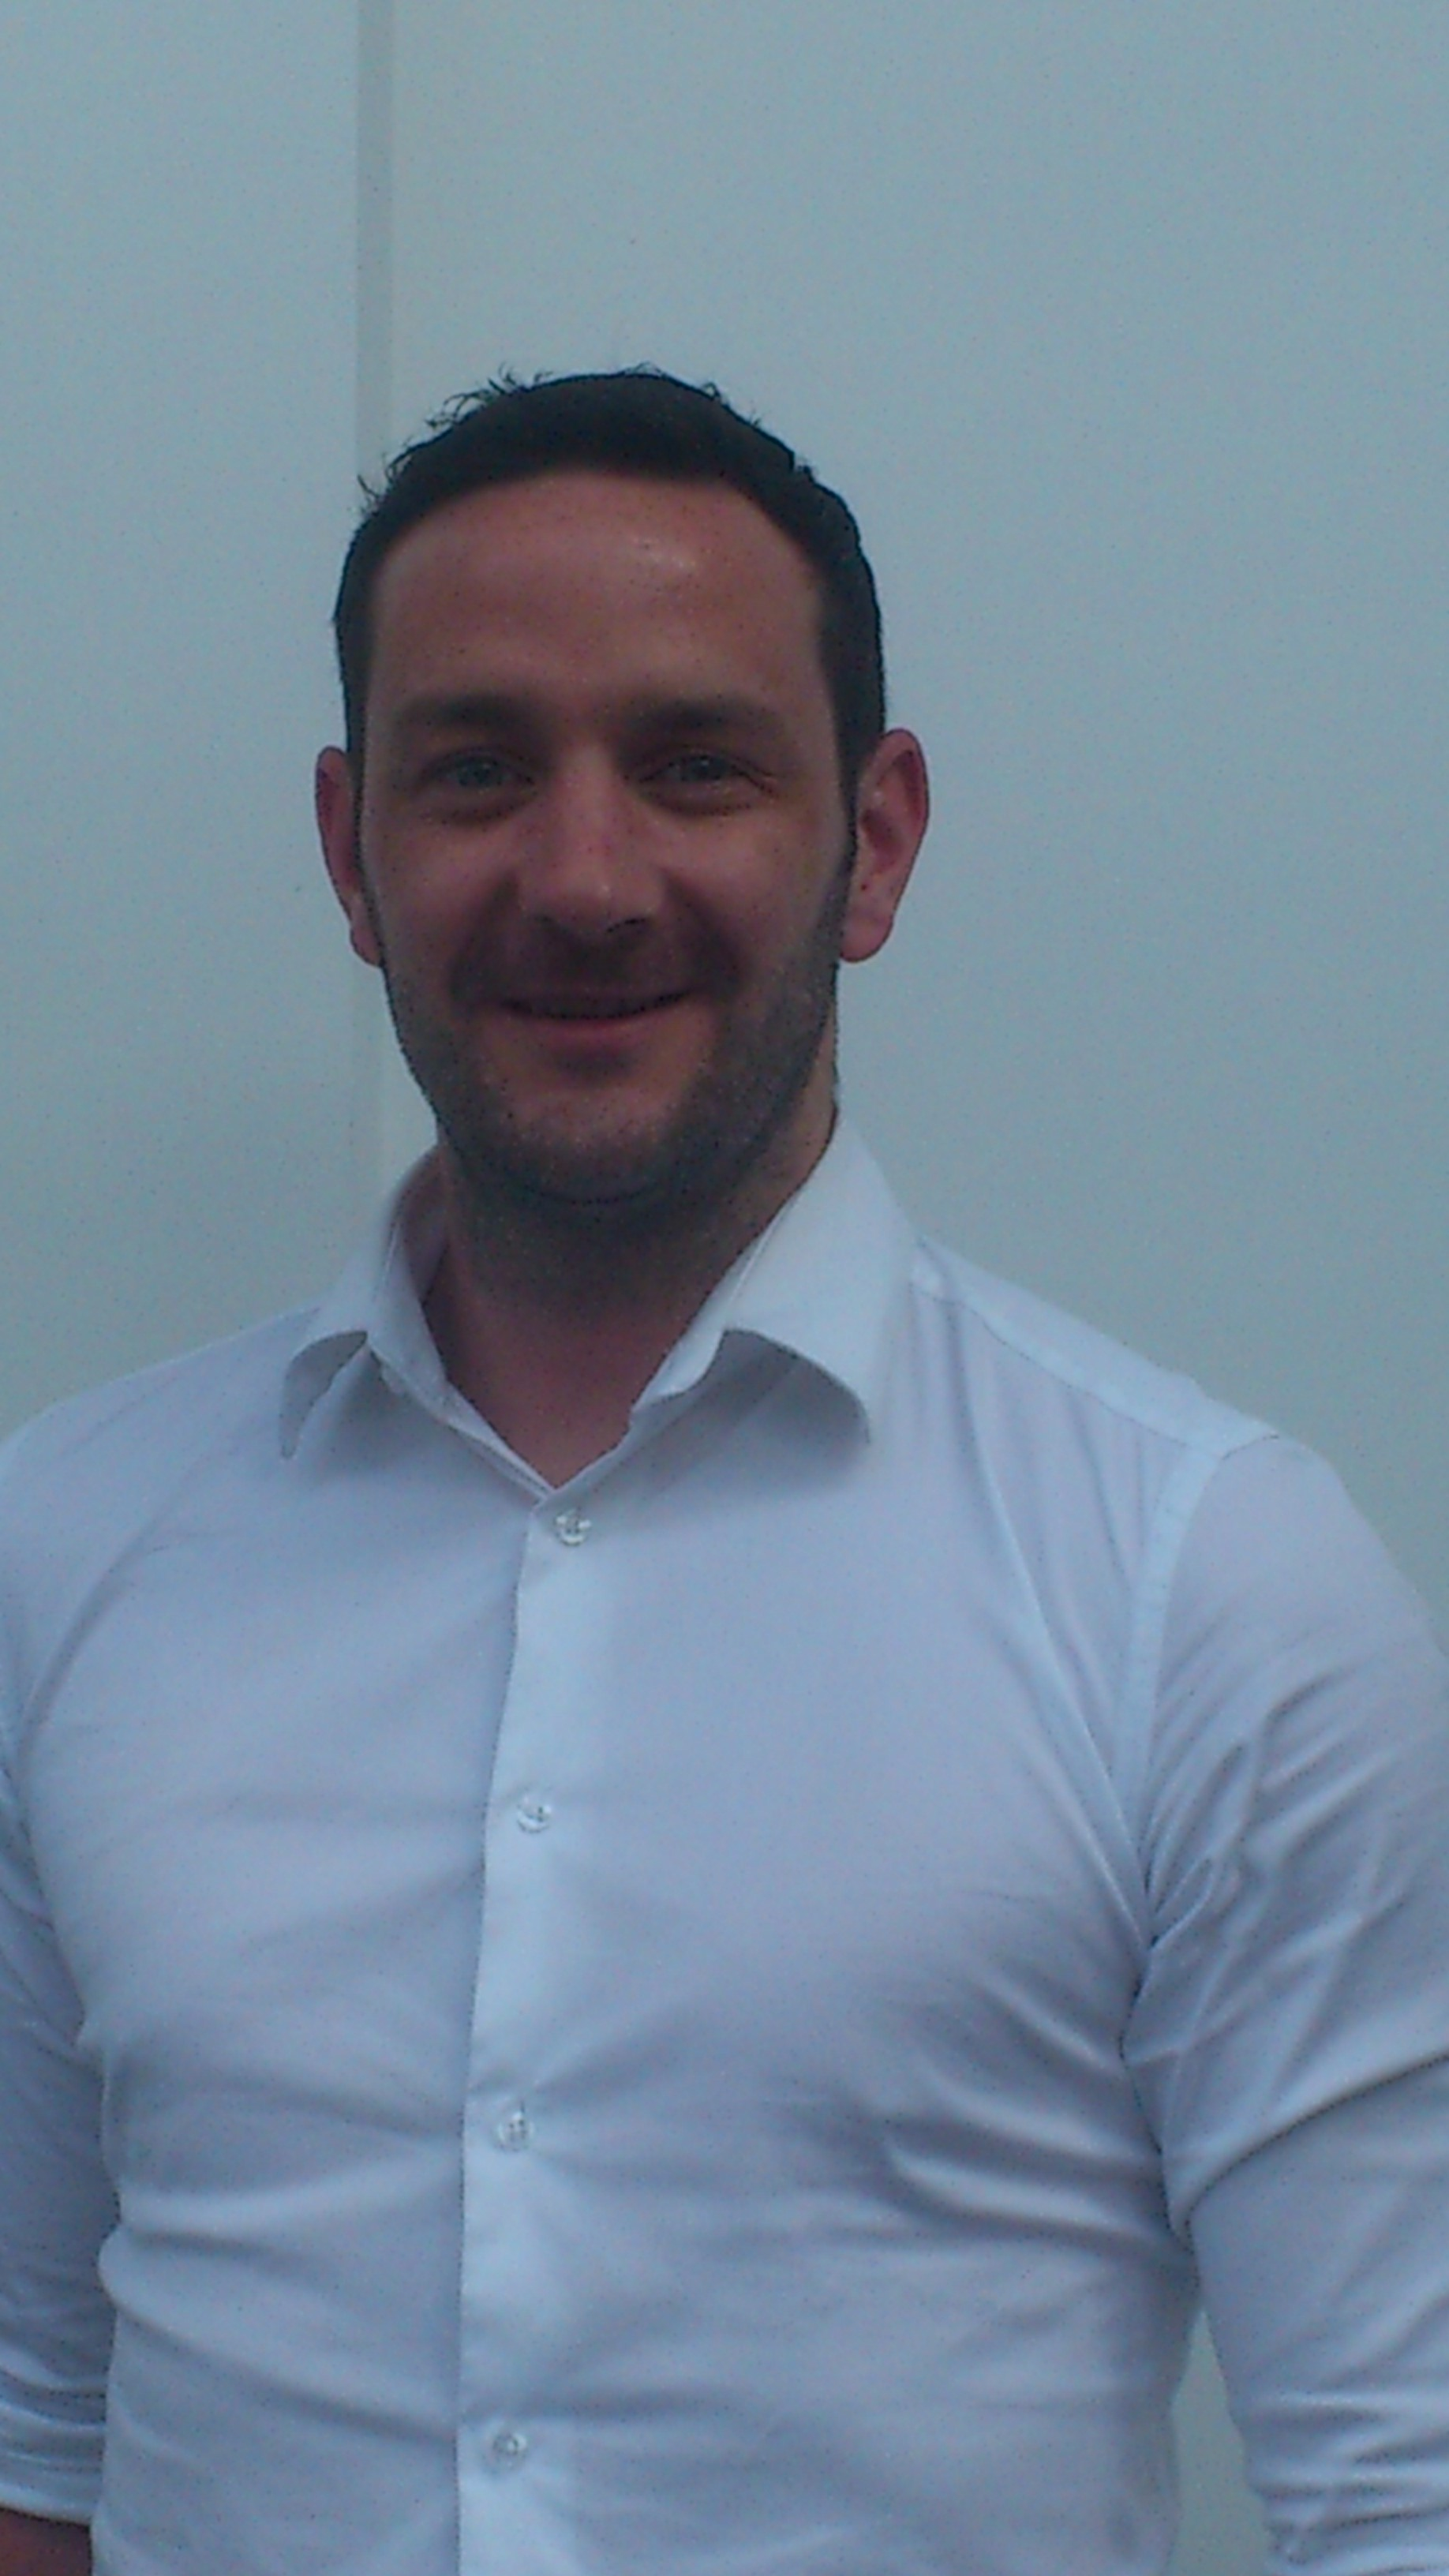 Michael Connolly BSc in Architectural Technology (WD094)